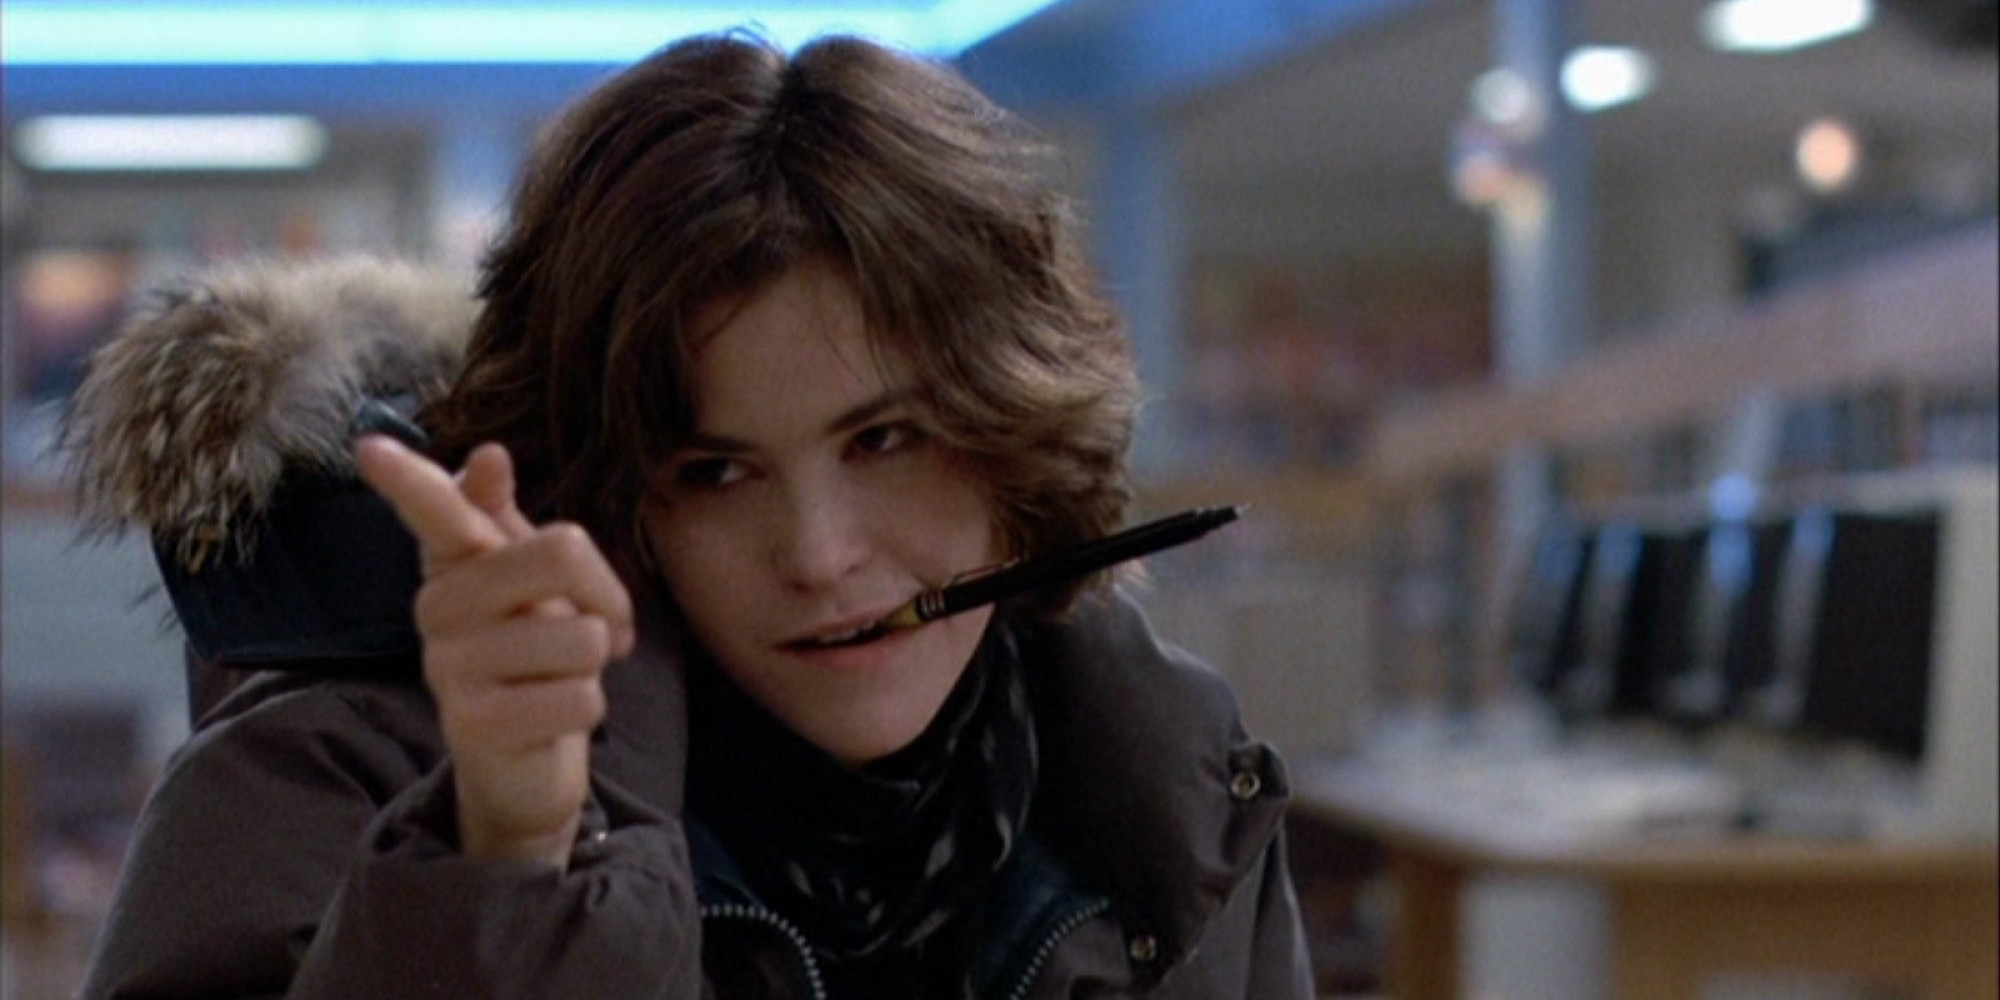 Ally Sheedy in The Breakfast Club (1985). Allison, wearing a big grey puffer coat with a fluffy hood, is sitting in the school library in detention. She has a black pen stuck in her mouth, and is doing snarky finger guns/pointing.